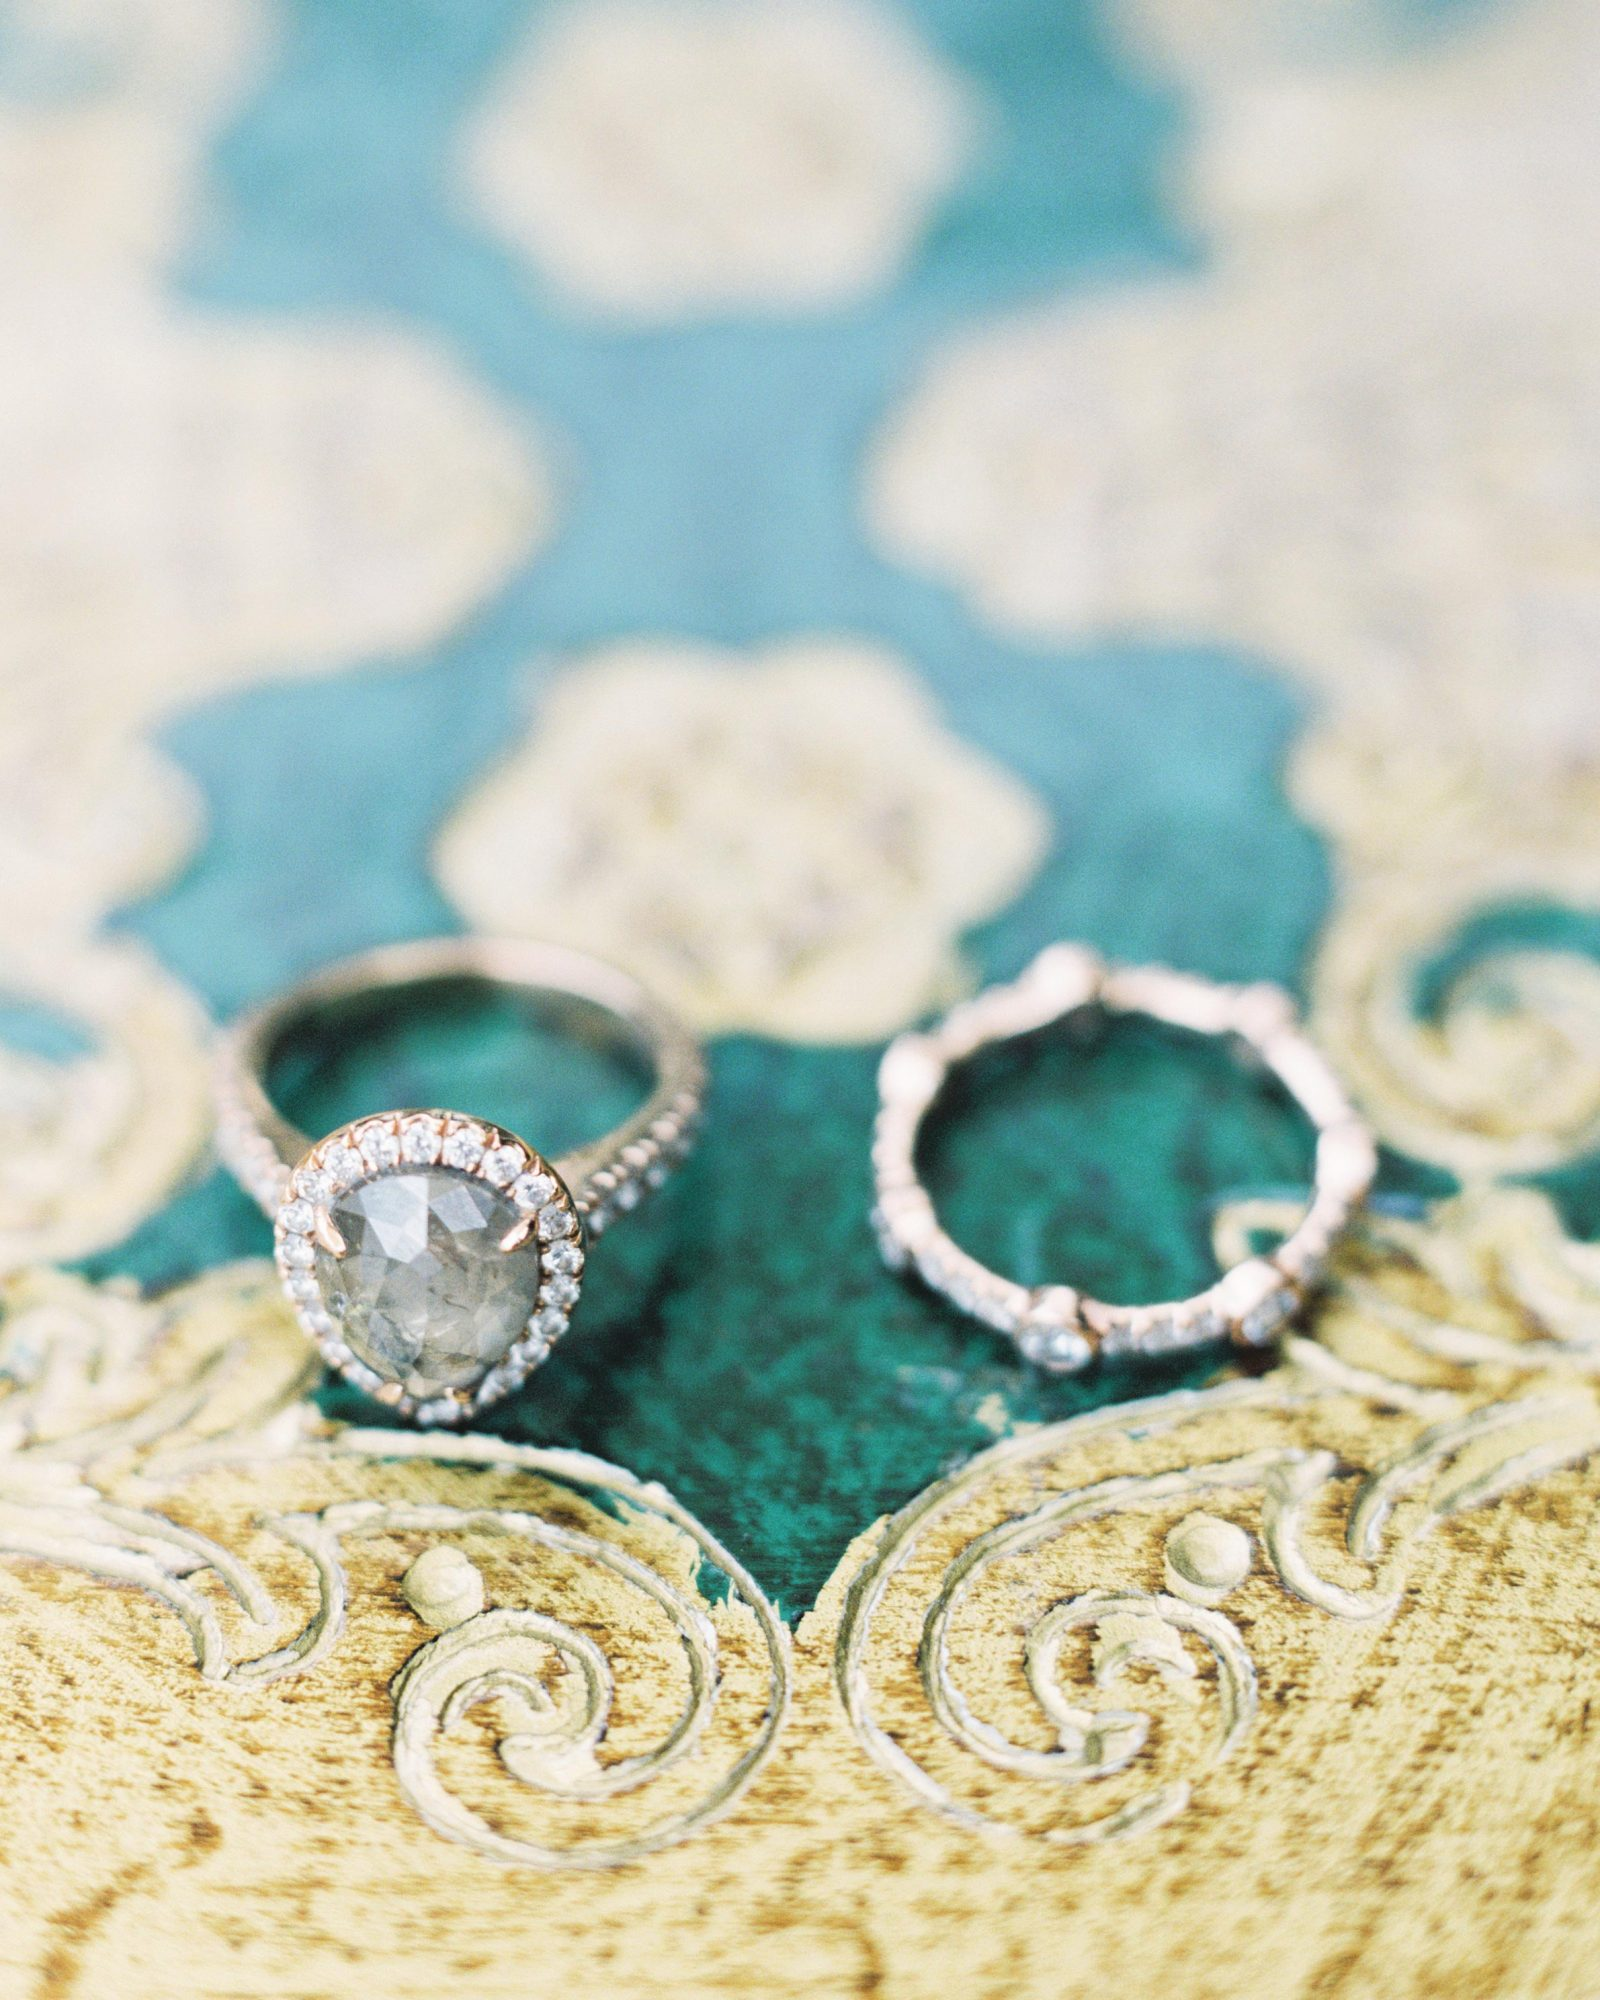 ginny-andrew-wedding-rings-0071-s112676-0216.jpg